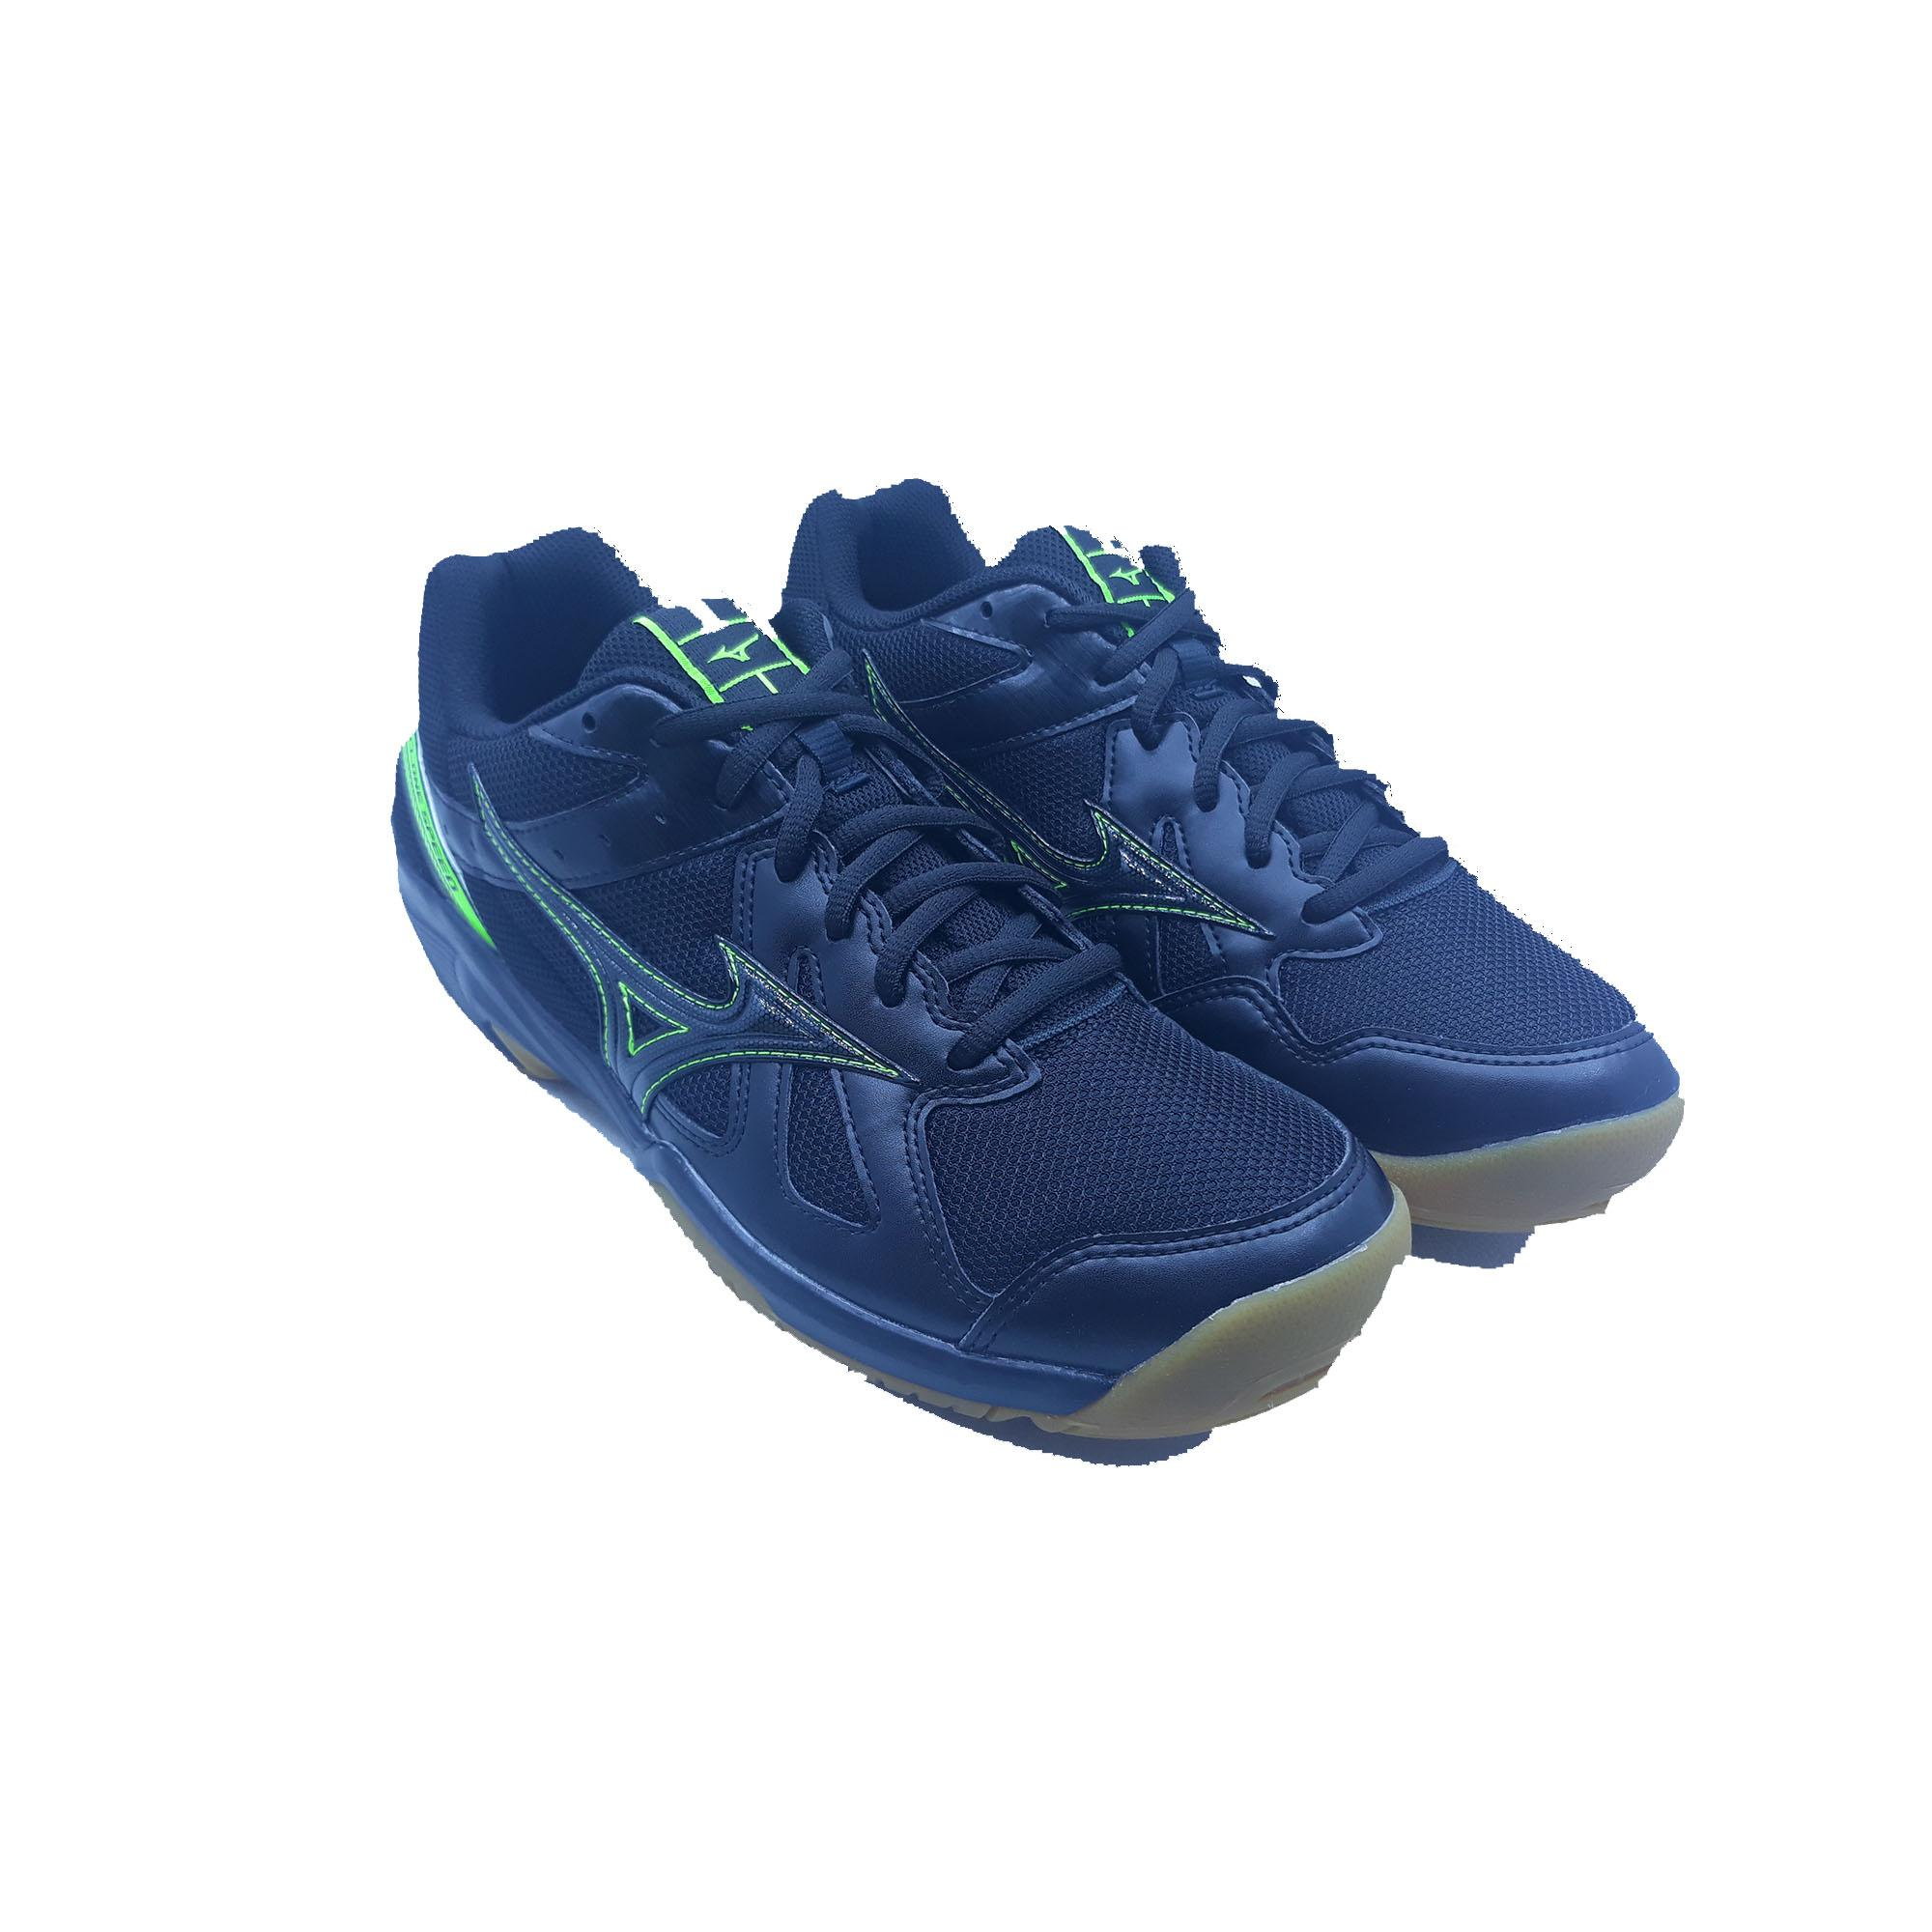 Sepatu Voli Mizuno Cyclone Speed - Black L.green 0d57ab95a6